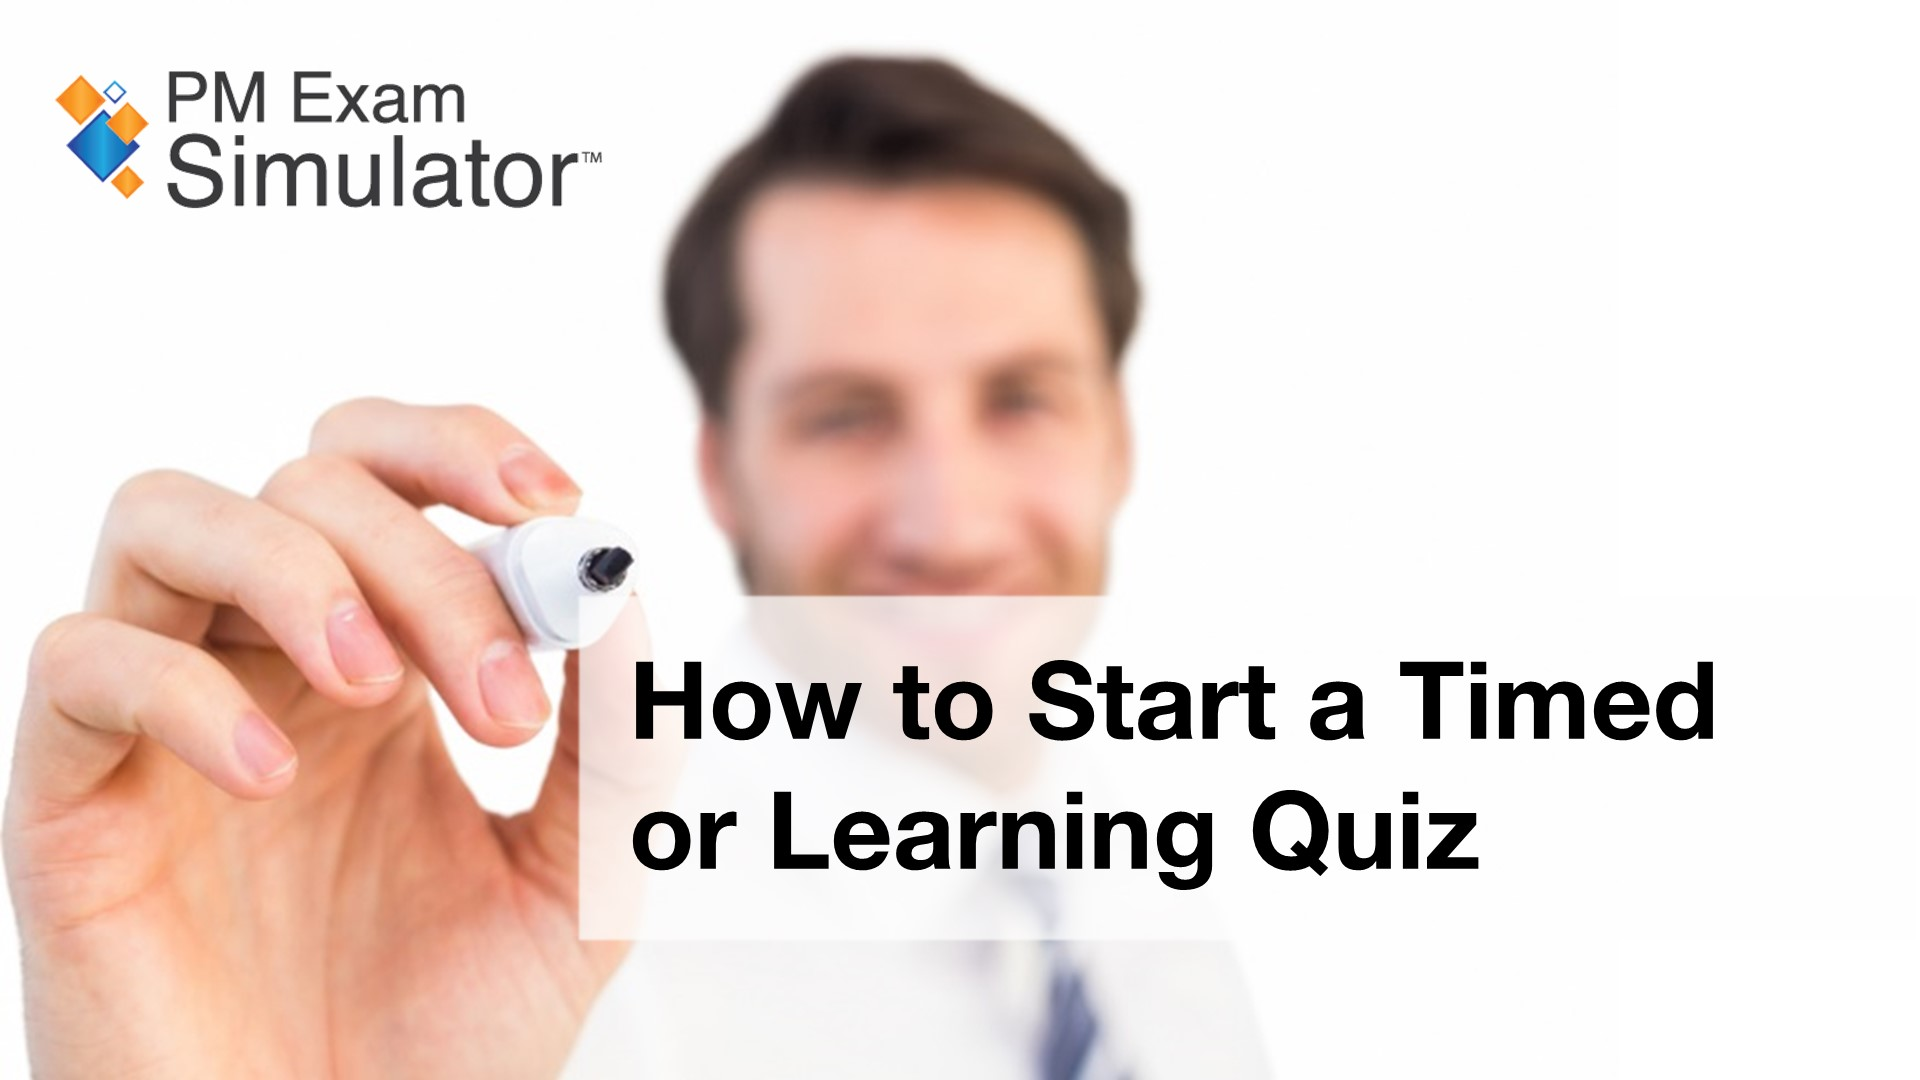 How to Start a Timed or Learning Quiz